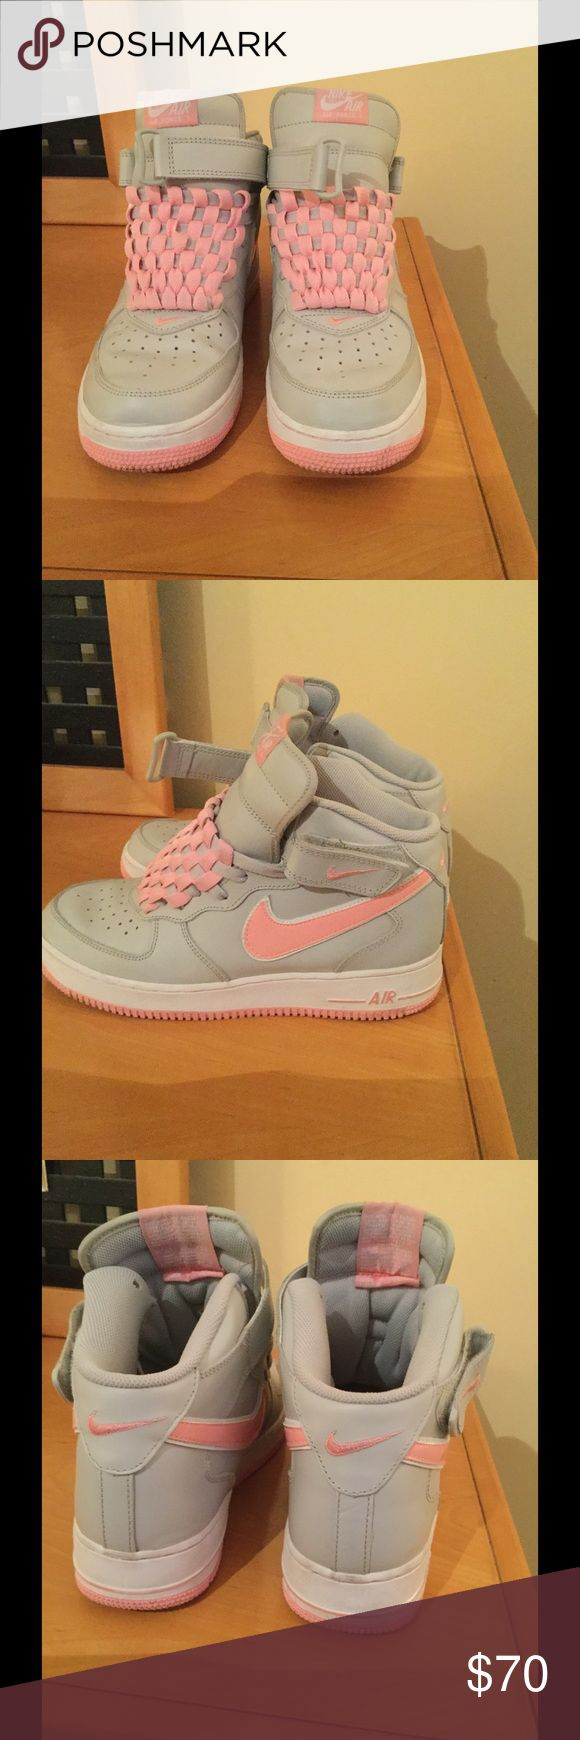 Nike Air Force Mid 1 pink gray athletic shoes In very good preowned condition, no rips or spots ,lots of life left on them . Nike Air Force leather pink and gray athletic shoes .Price firm Nike Shoes Athletic Shoes